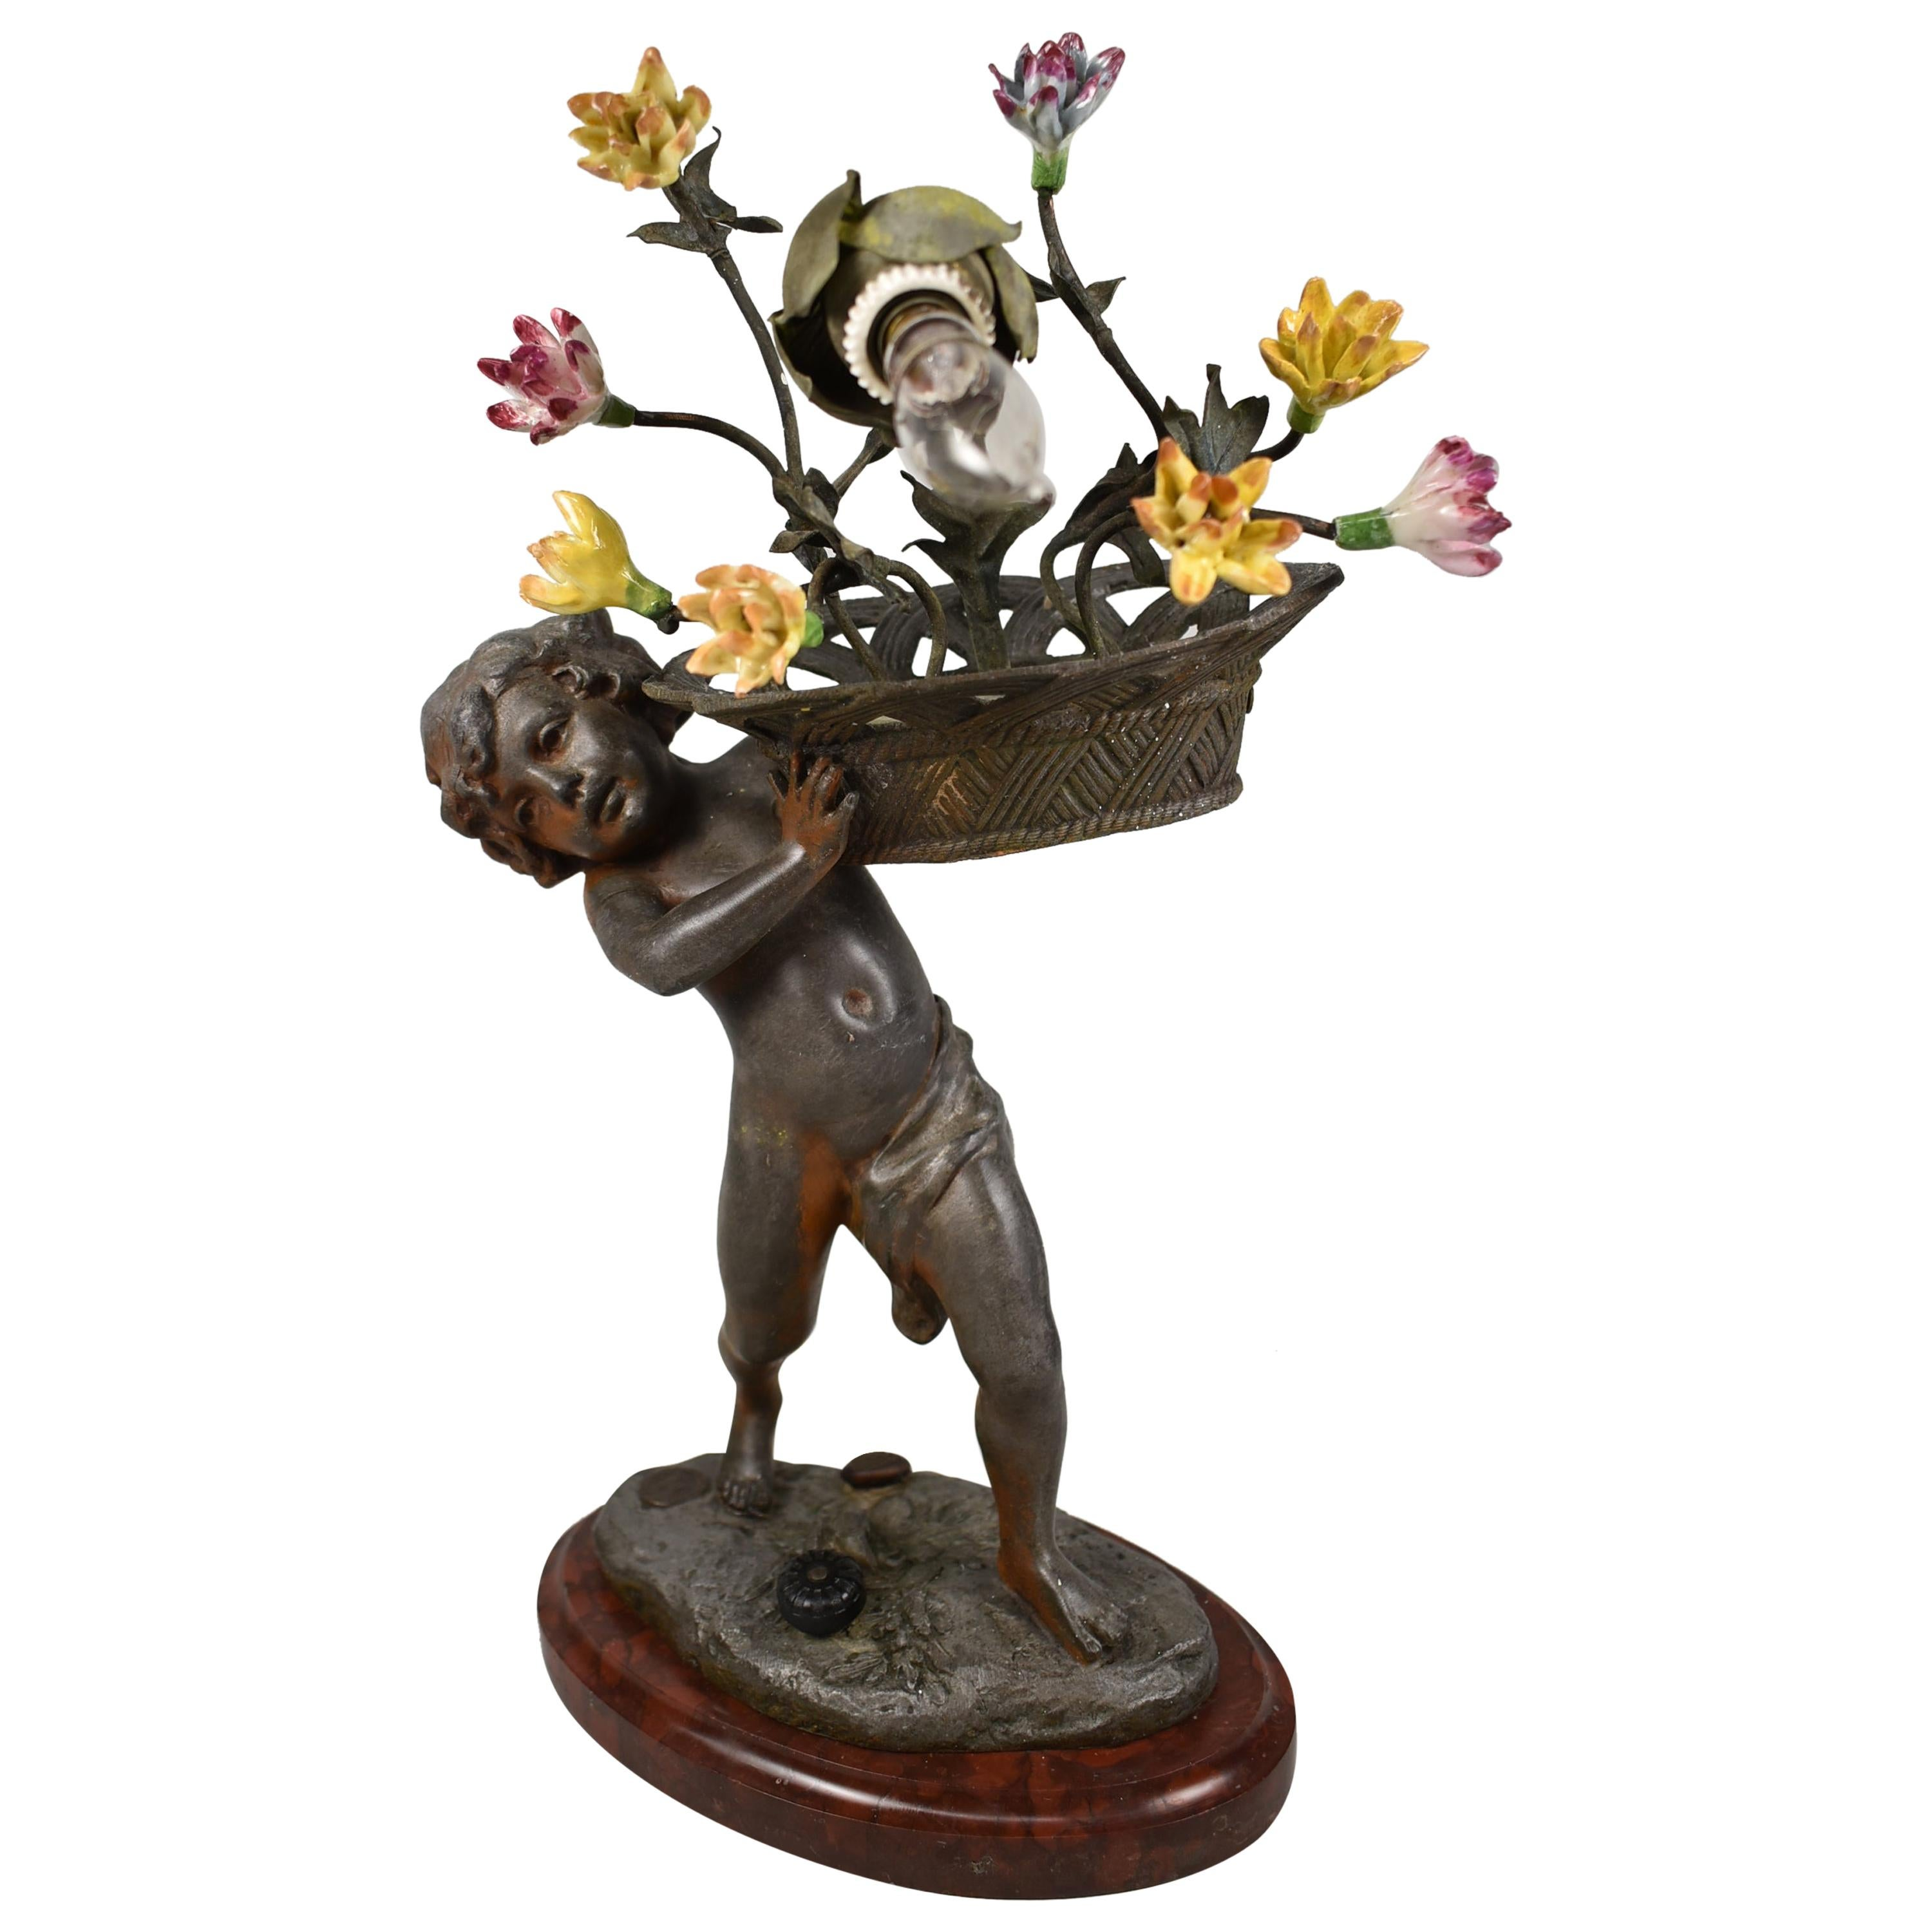 French Art Nouveau Figural Lamp with Flower Basket Charles Perror, France